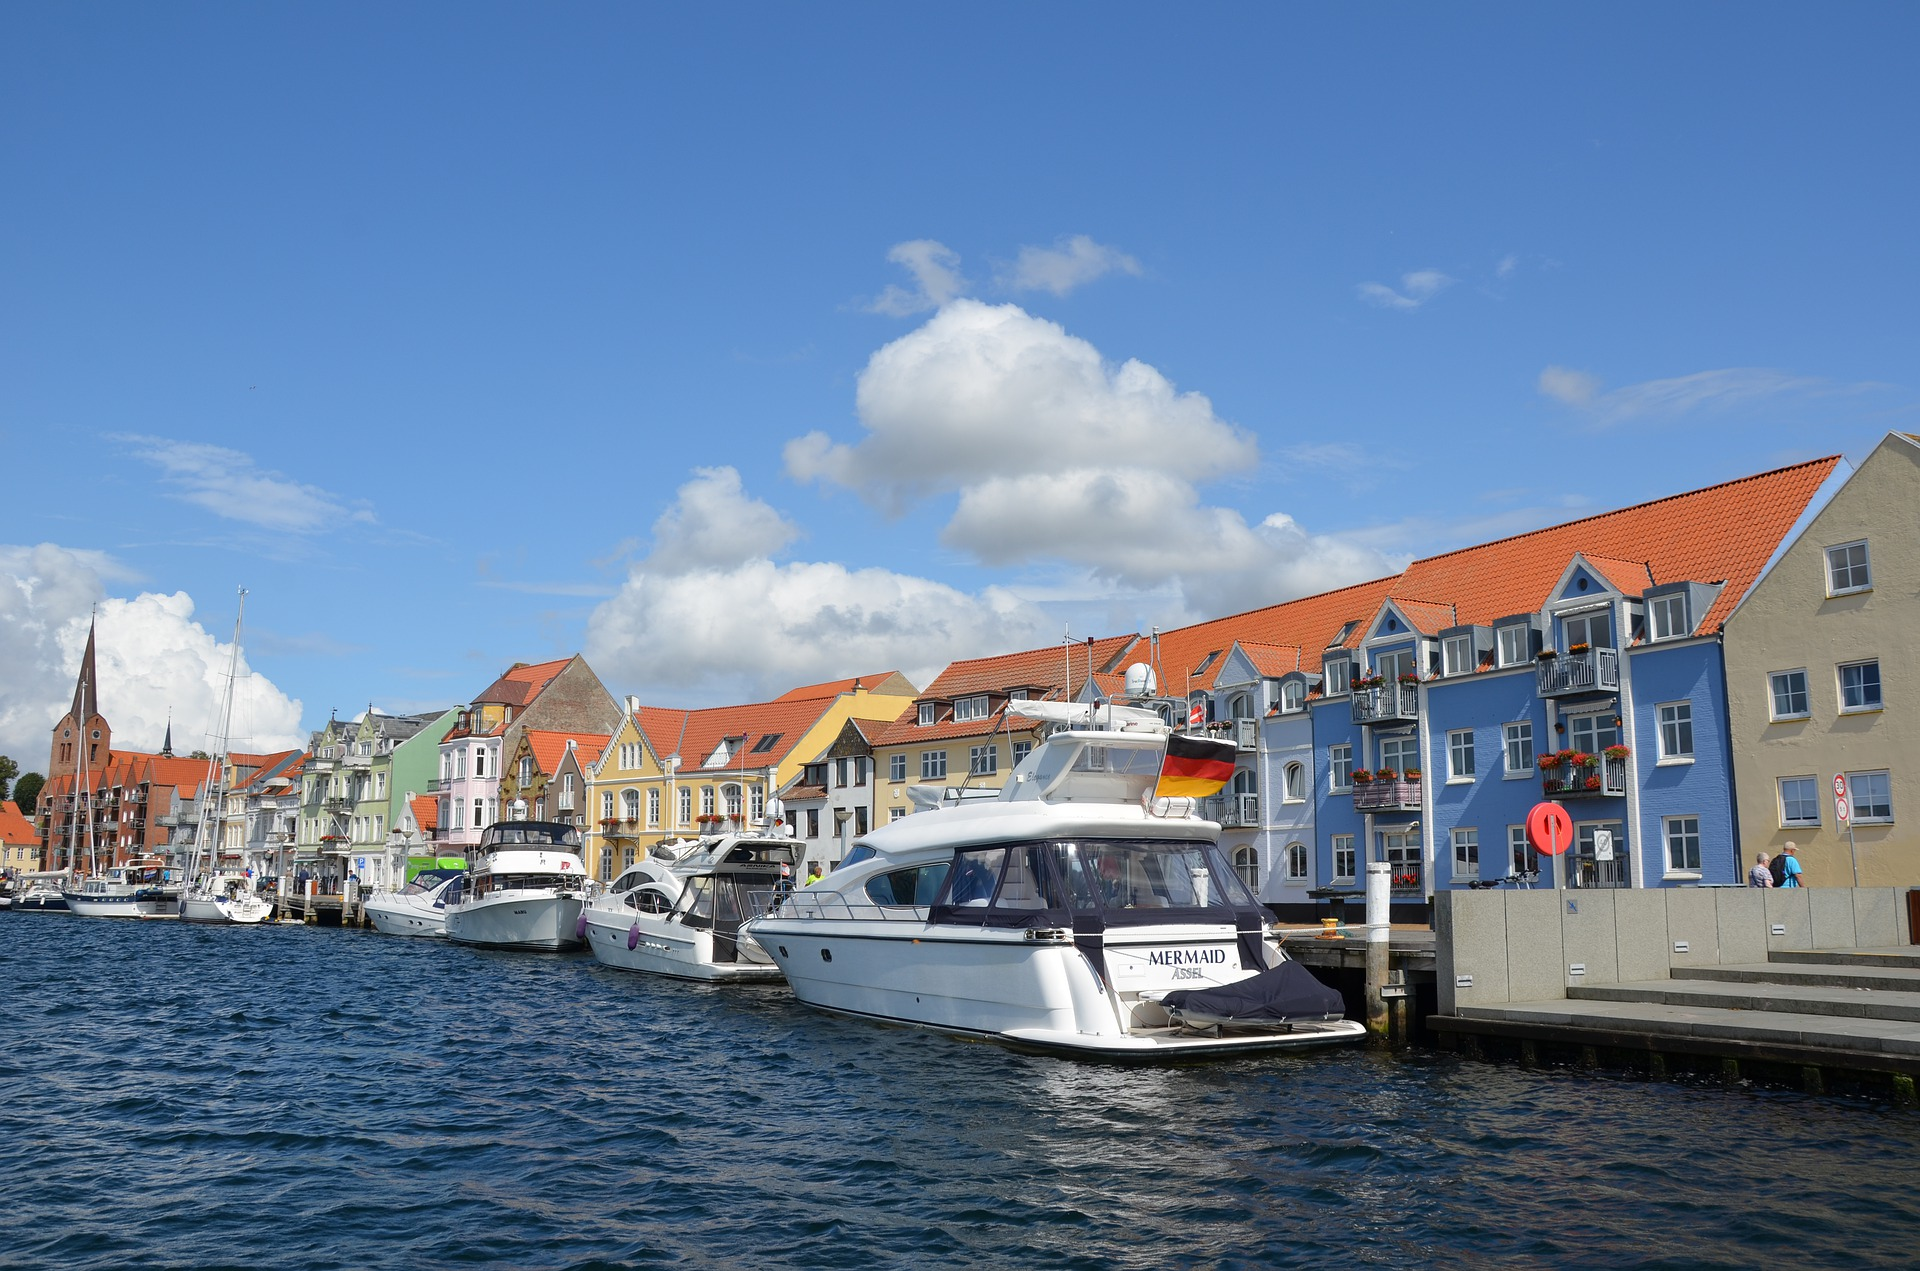 We keep the balance between developing Sønderborg and the smaller cities in the municipality